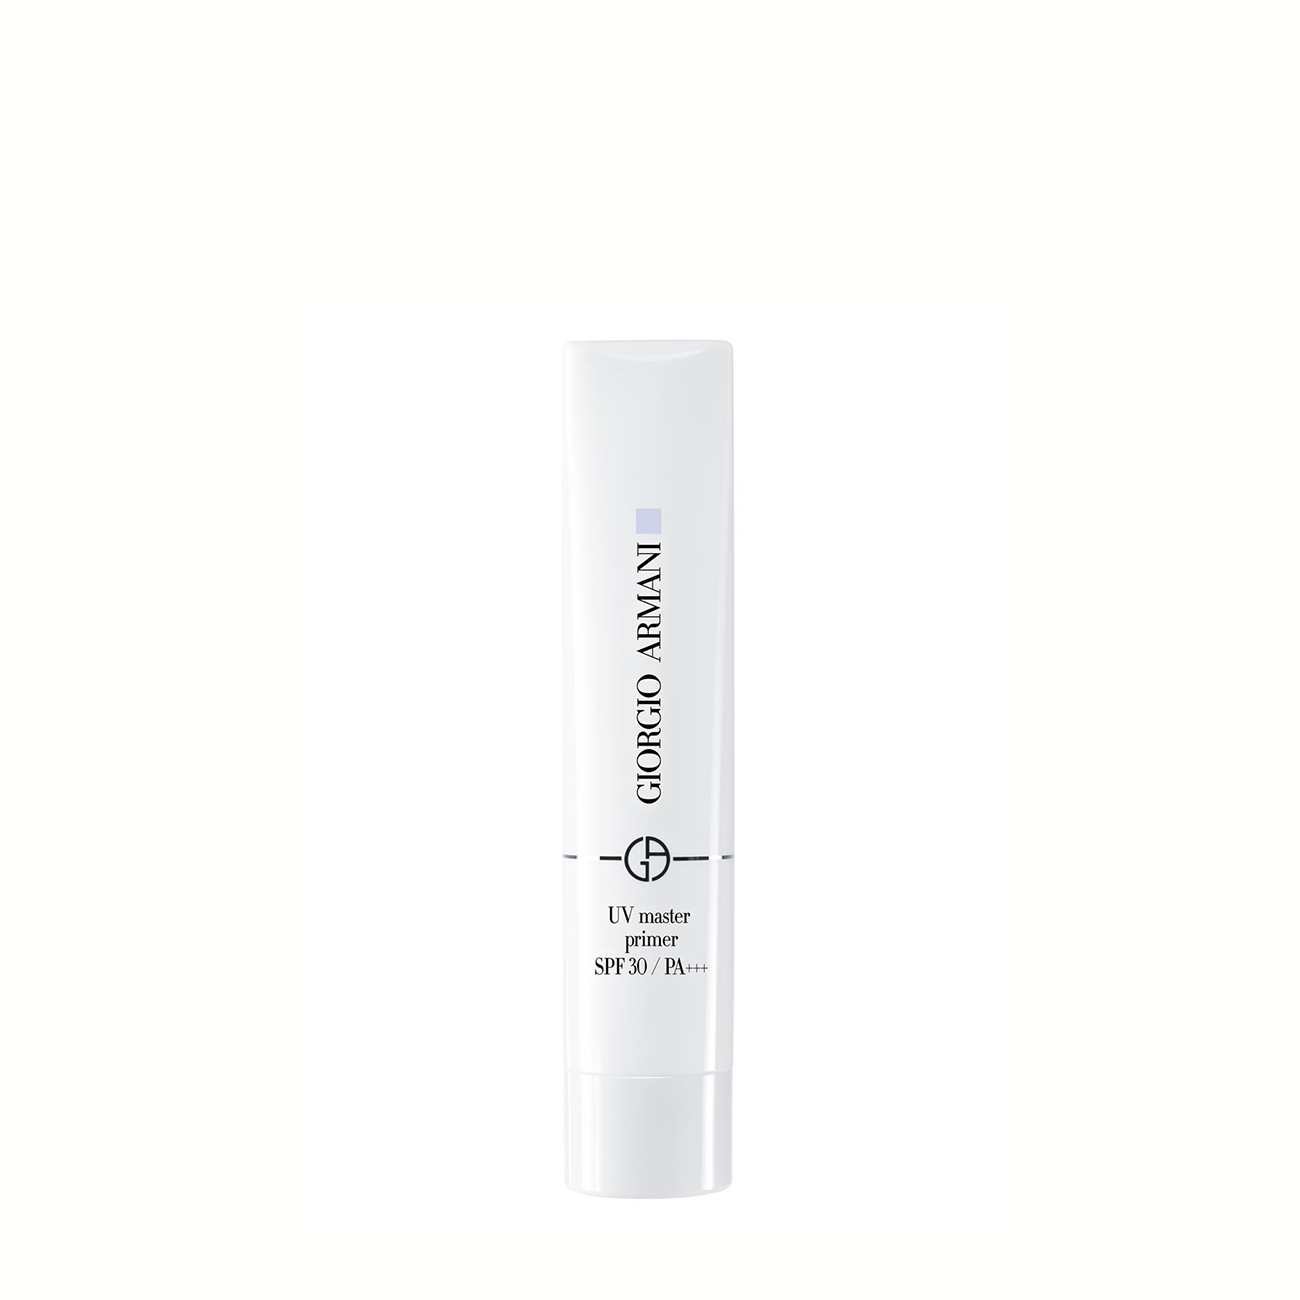 UV MASTER PRIMER 1 30ml imagine produs